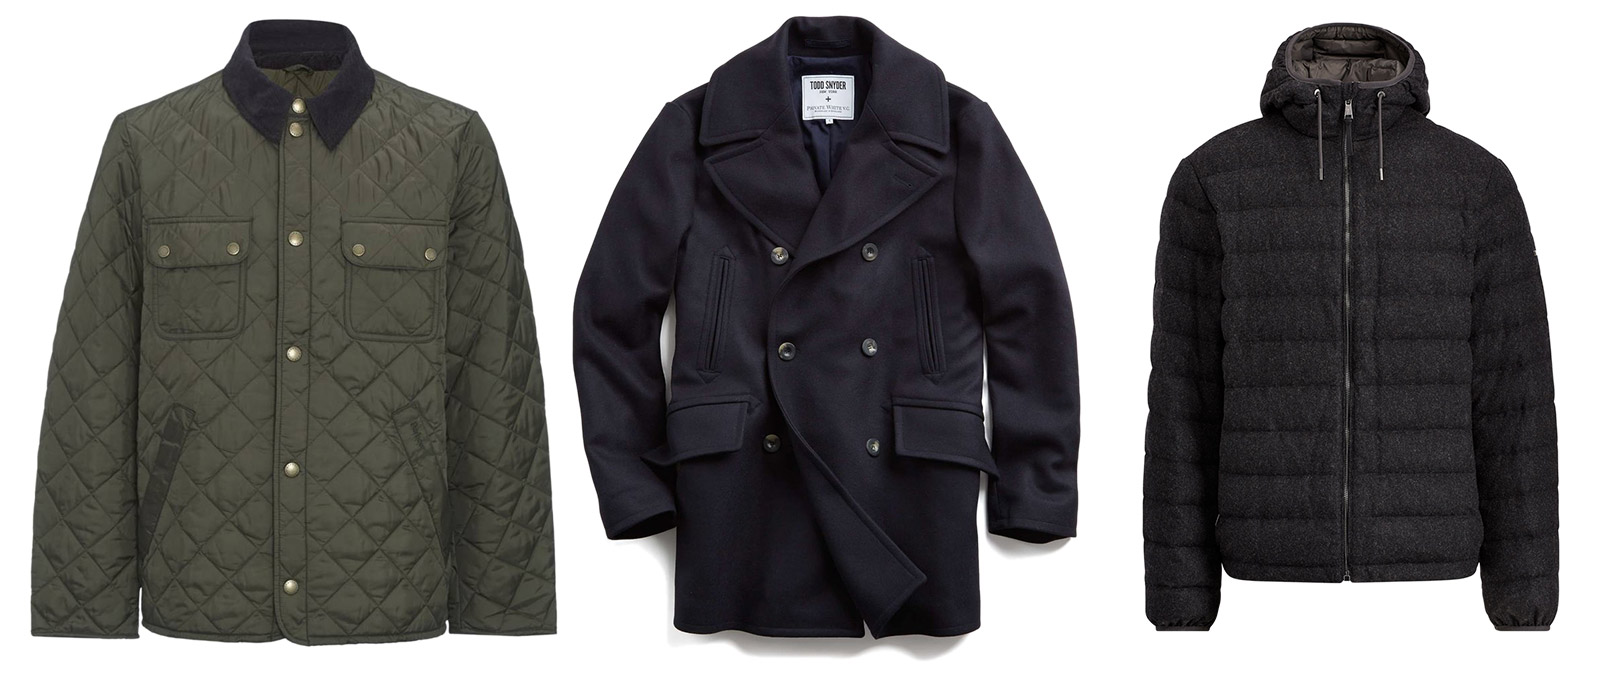 men's winter fashion outerwear